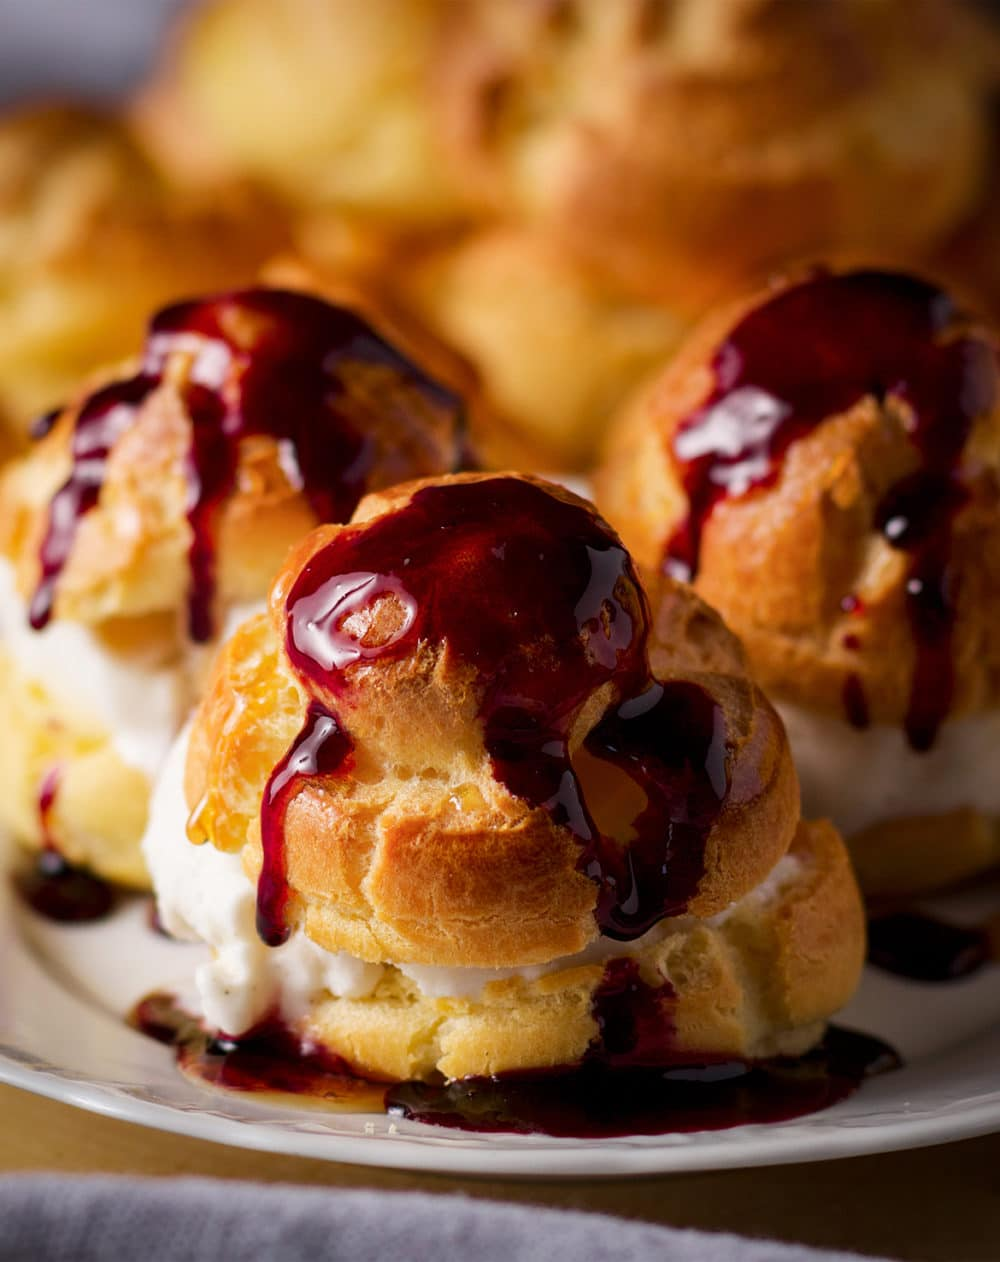 A plate of three profiteroles filled with vanilla ice cream and drizzled with red and white wine reduction dessert sauce.